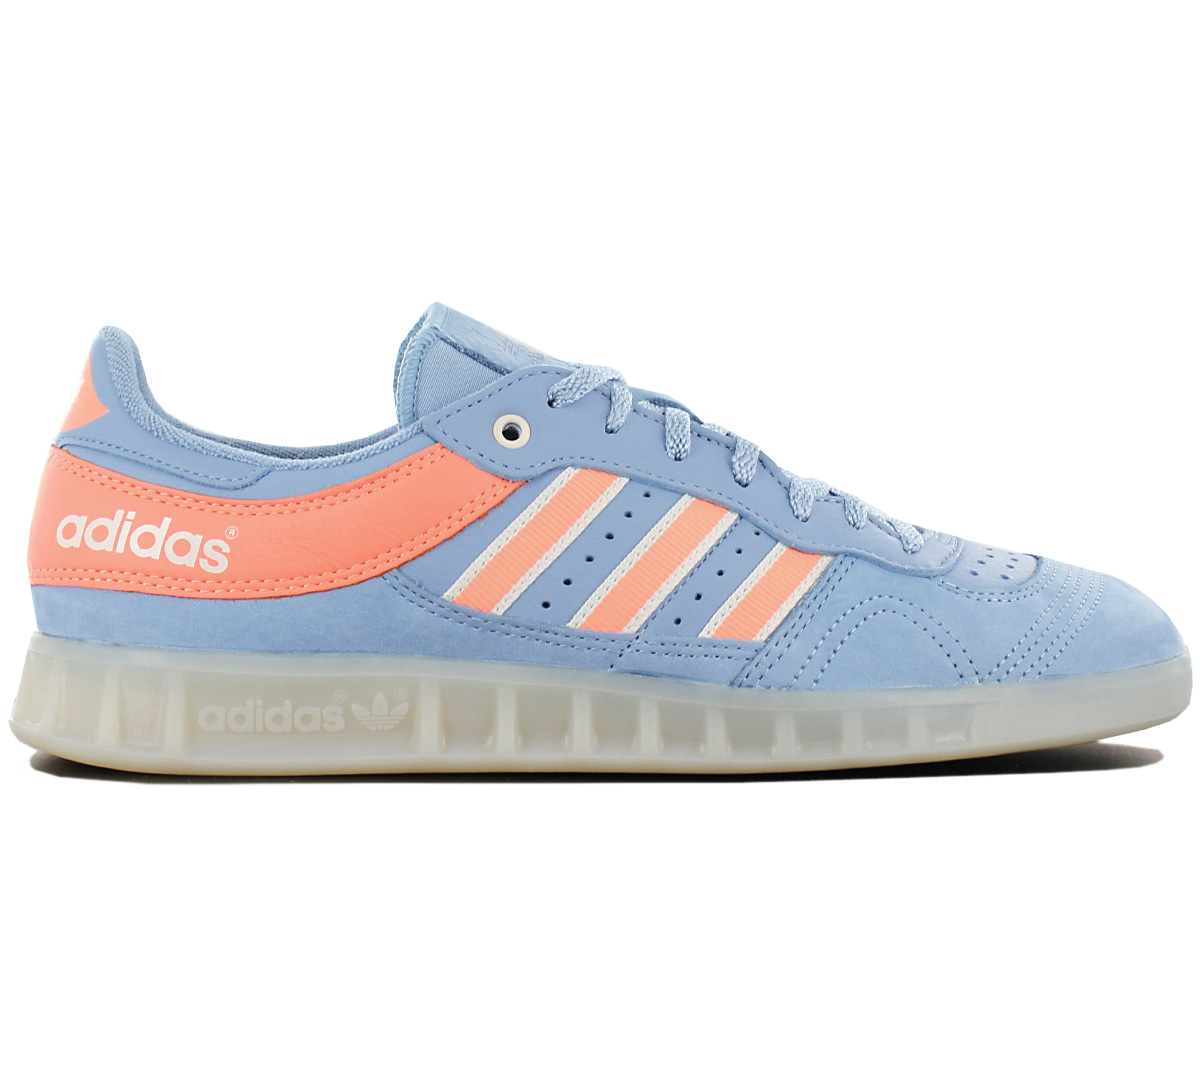 online retailer 4a67b 3160f Adidas Consortium Handball Top Oyster Men s Sneakers Shoes Leather ...